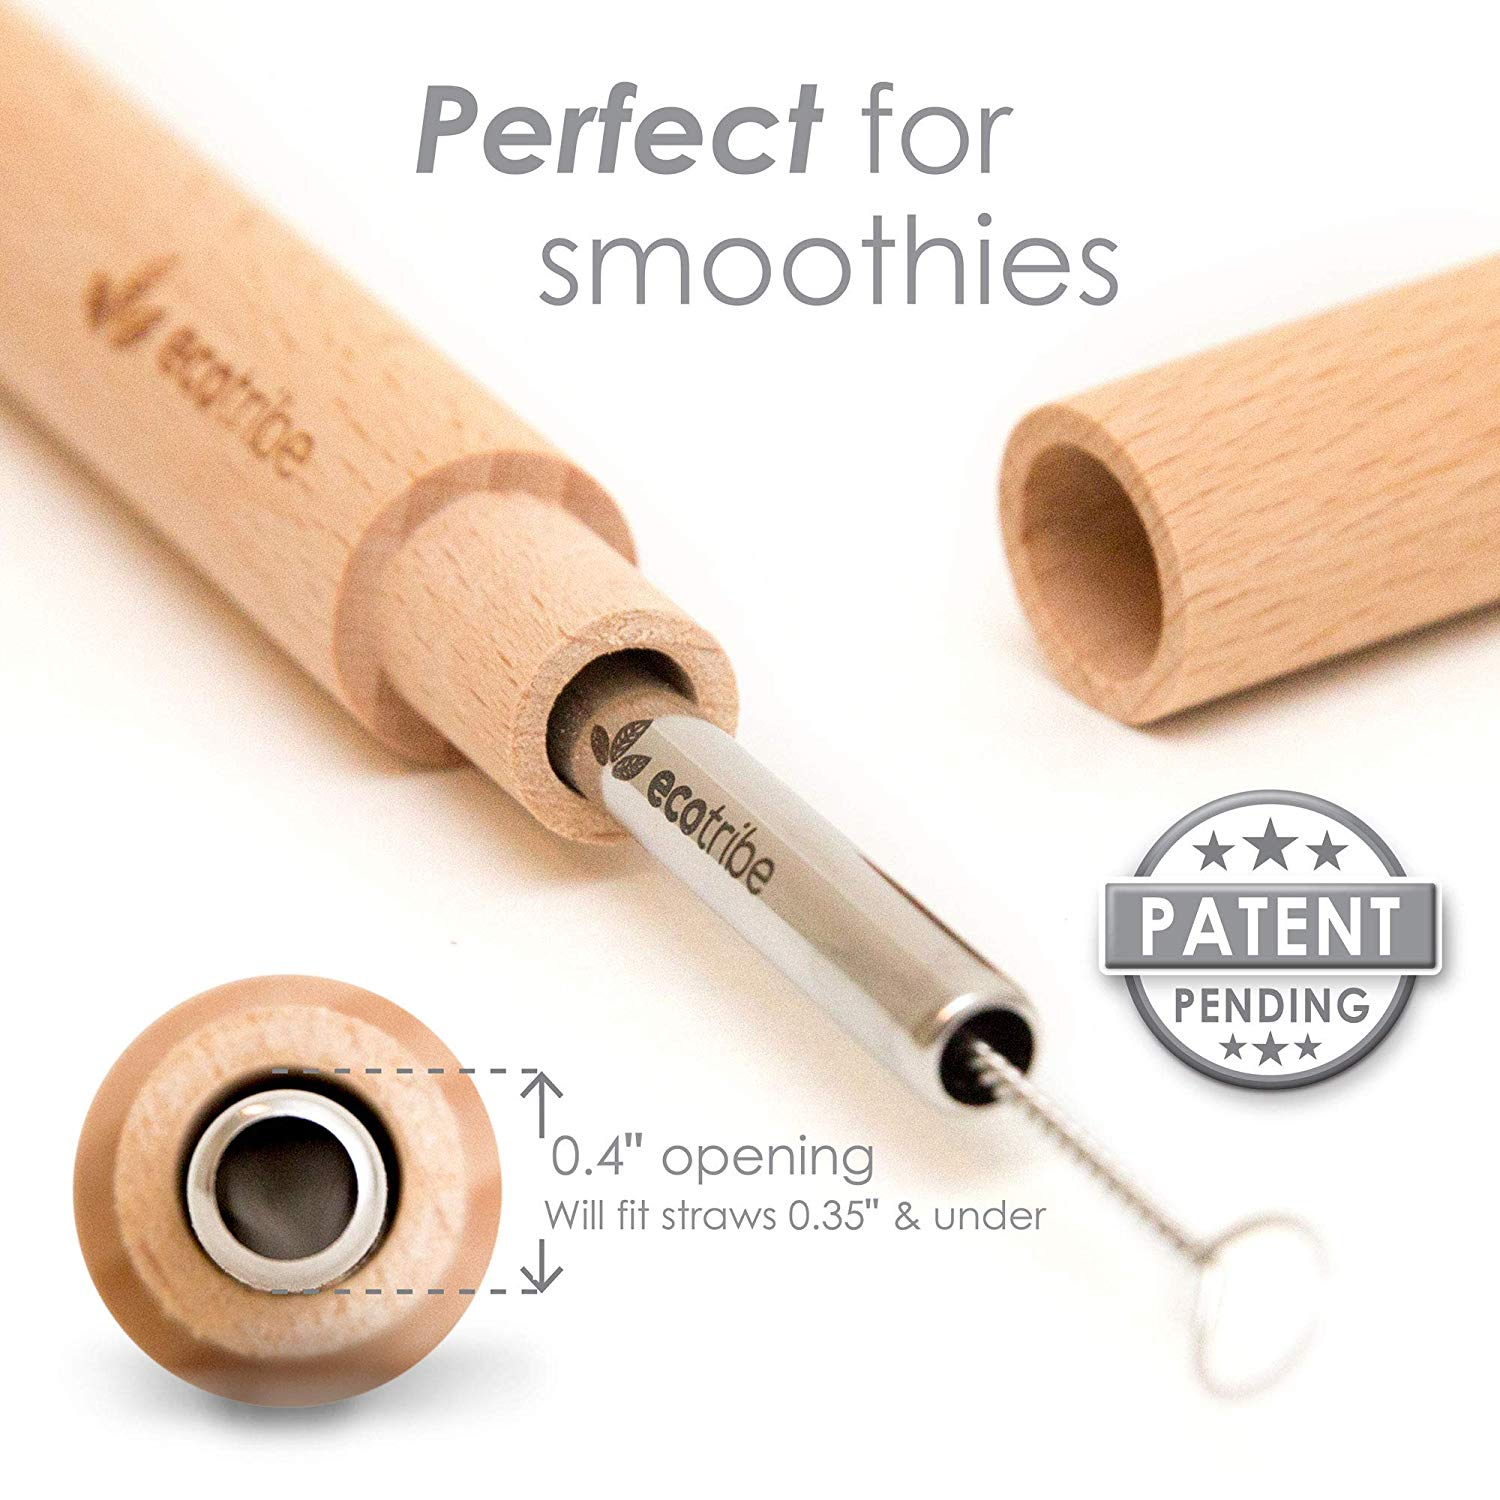 stainless steel straws an eco friendly gift for smoothie lovers